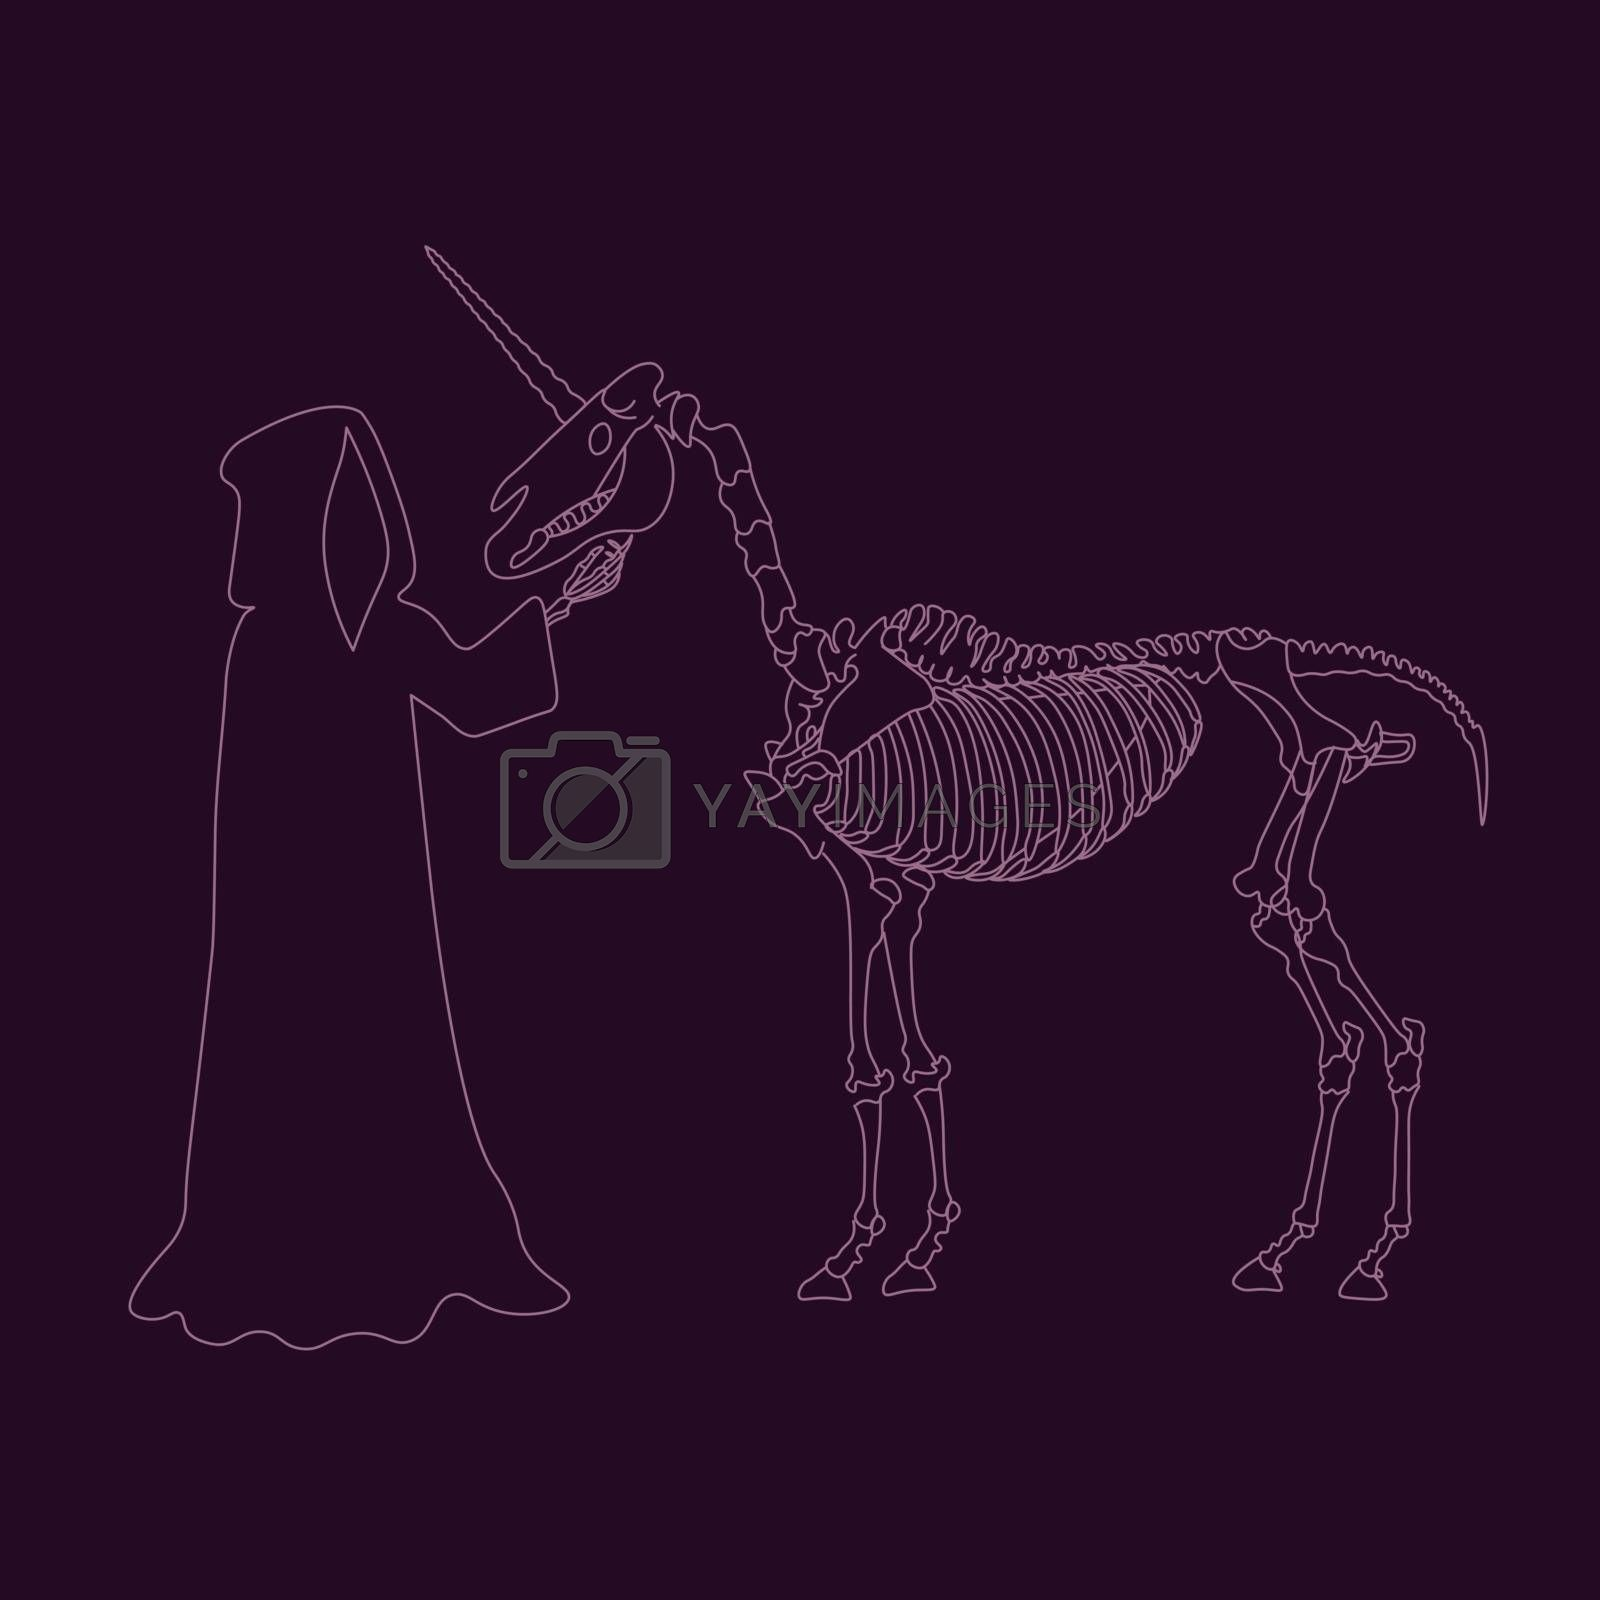 Line art with grim reaper petting a unicorn skeleton on violet background